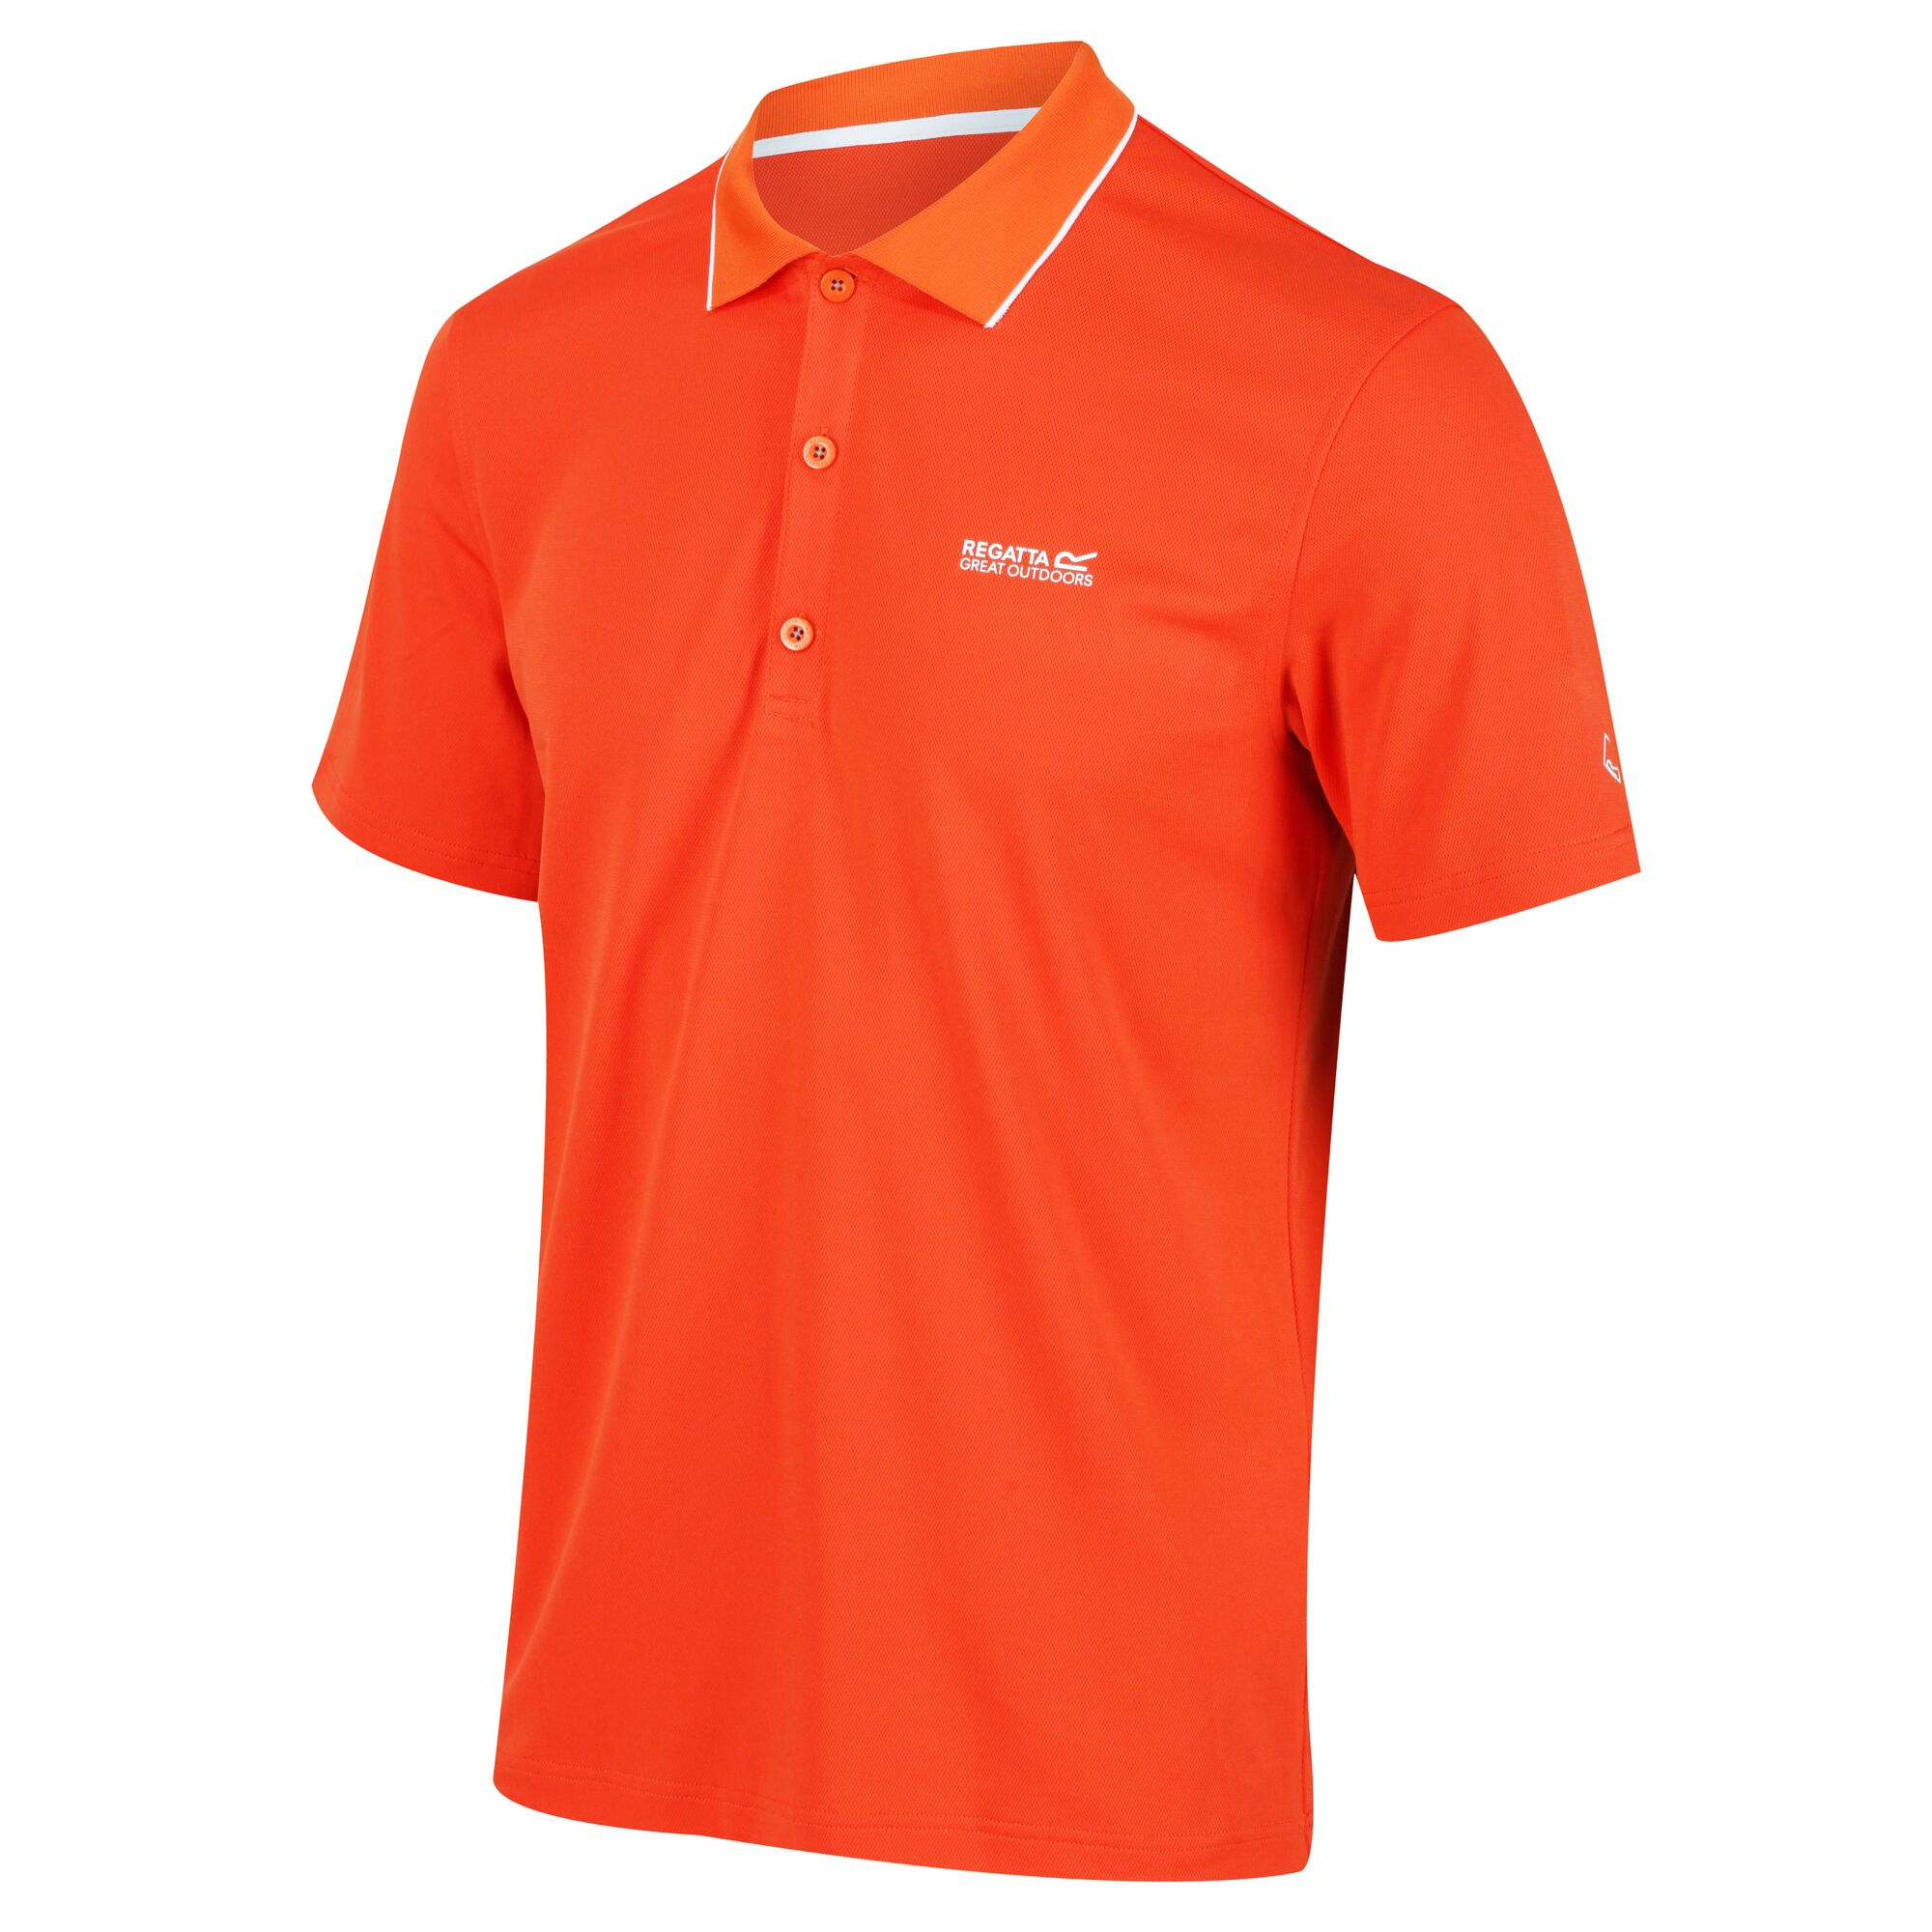 Regatta Maverick V - Herren Funktions-Polo-Shirt